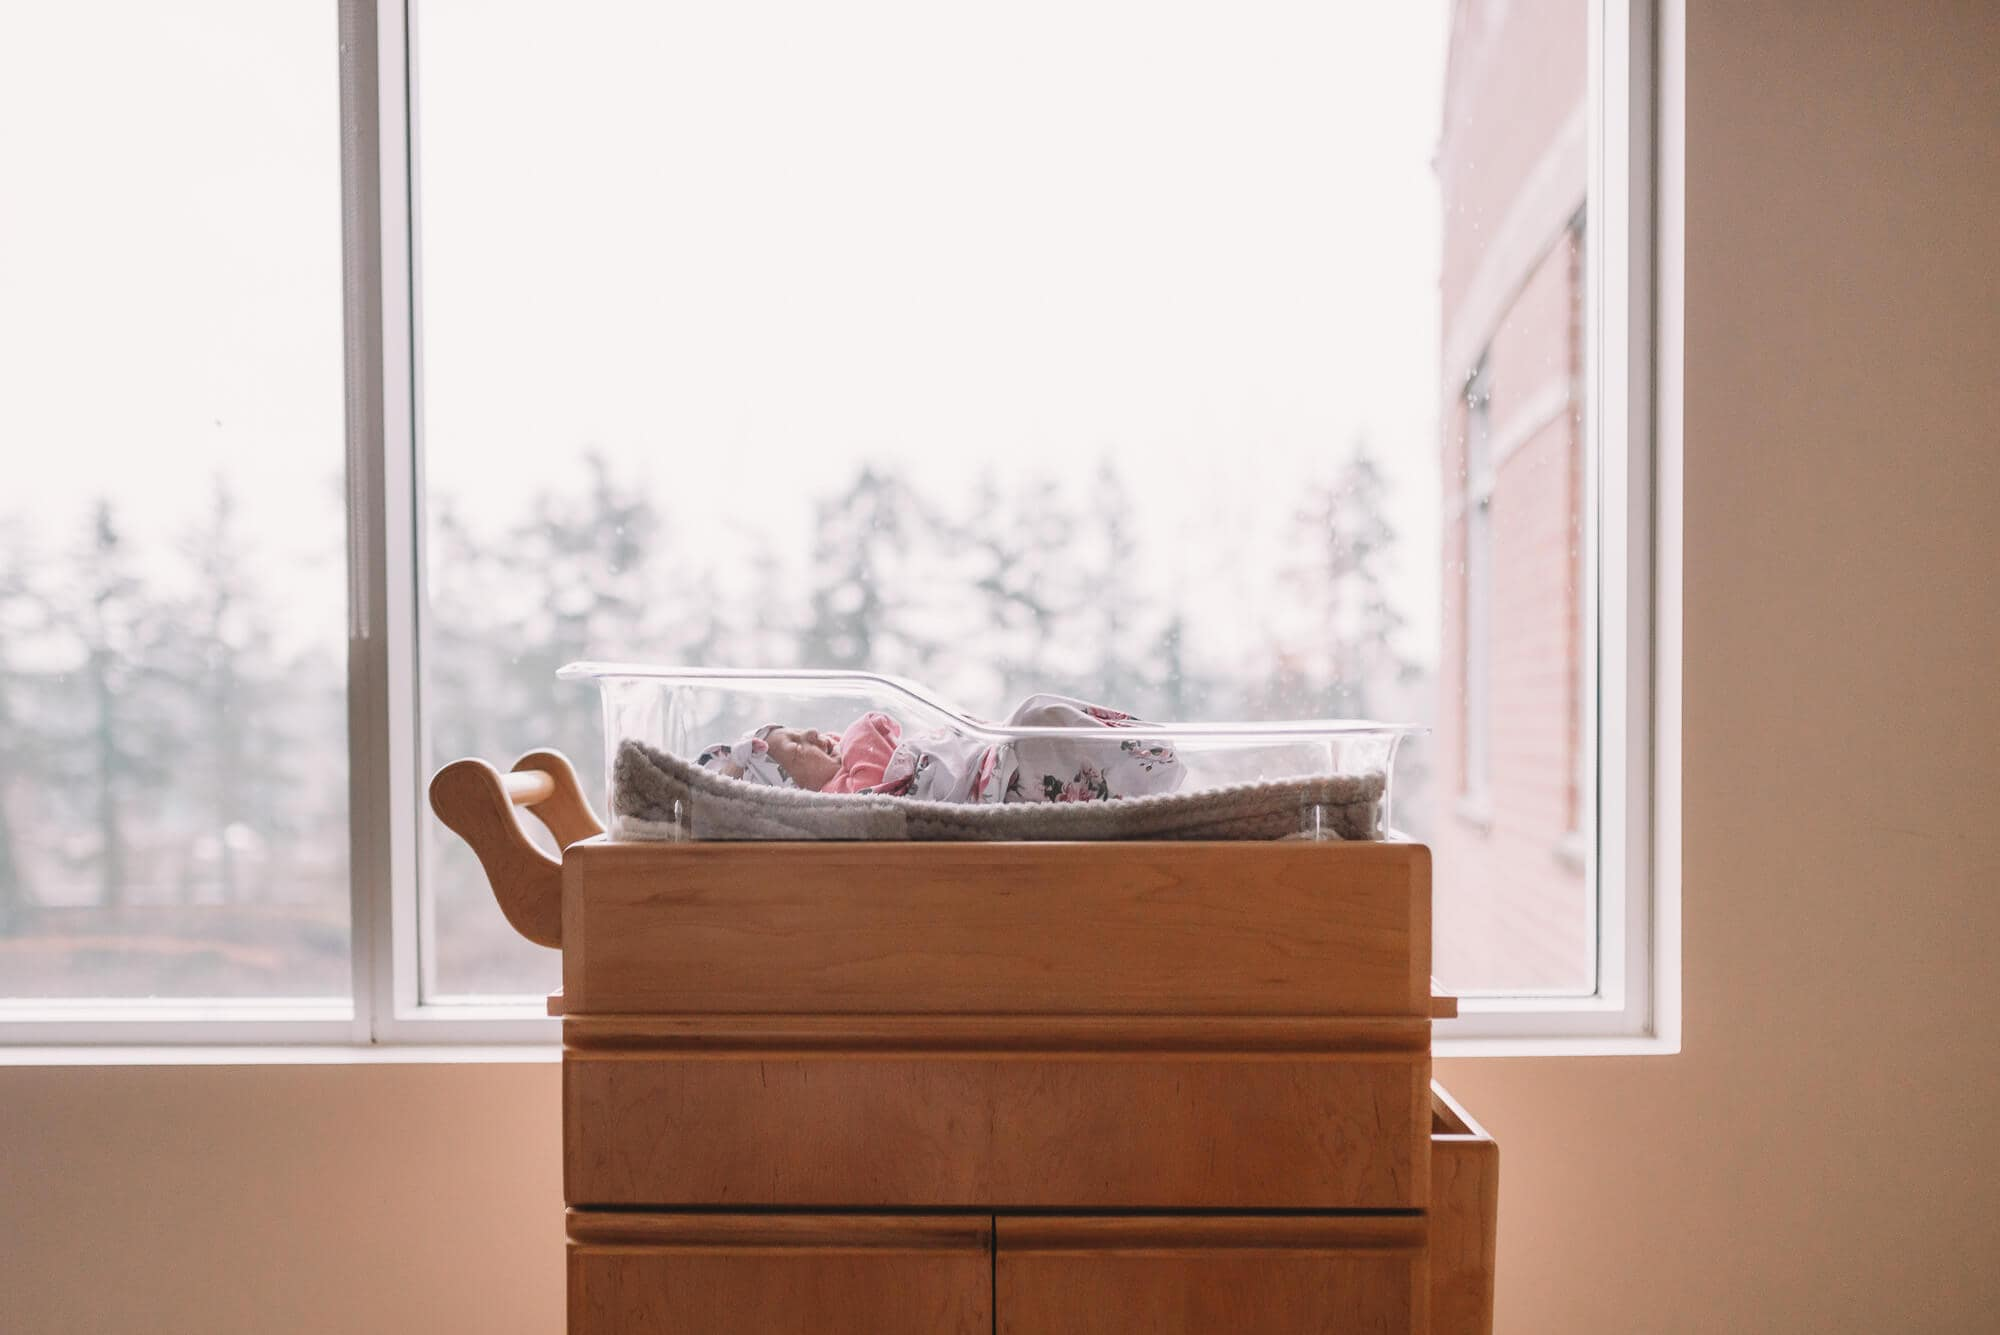 bassinet in hospital room in Vancouver Fresh 48 session